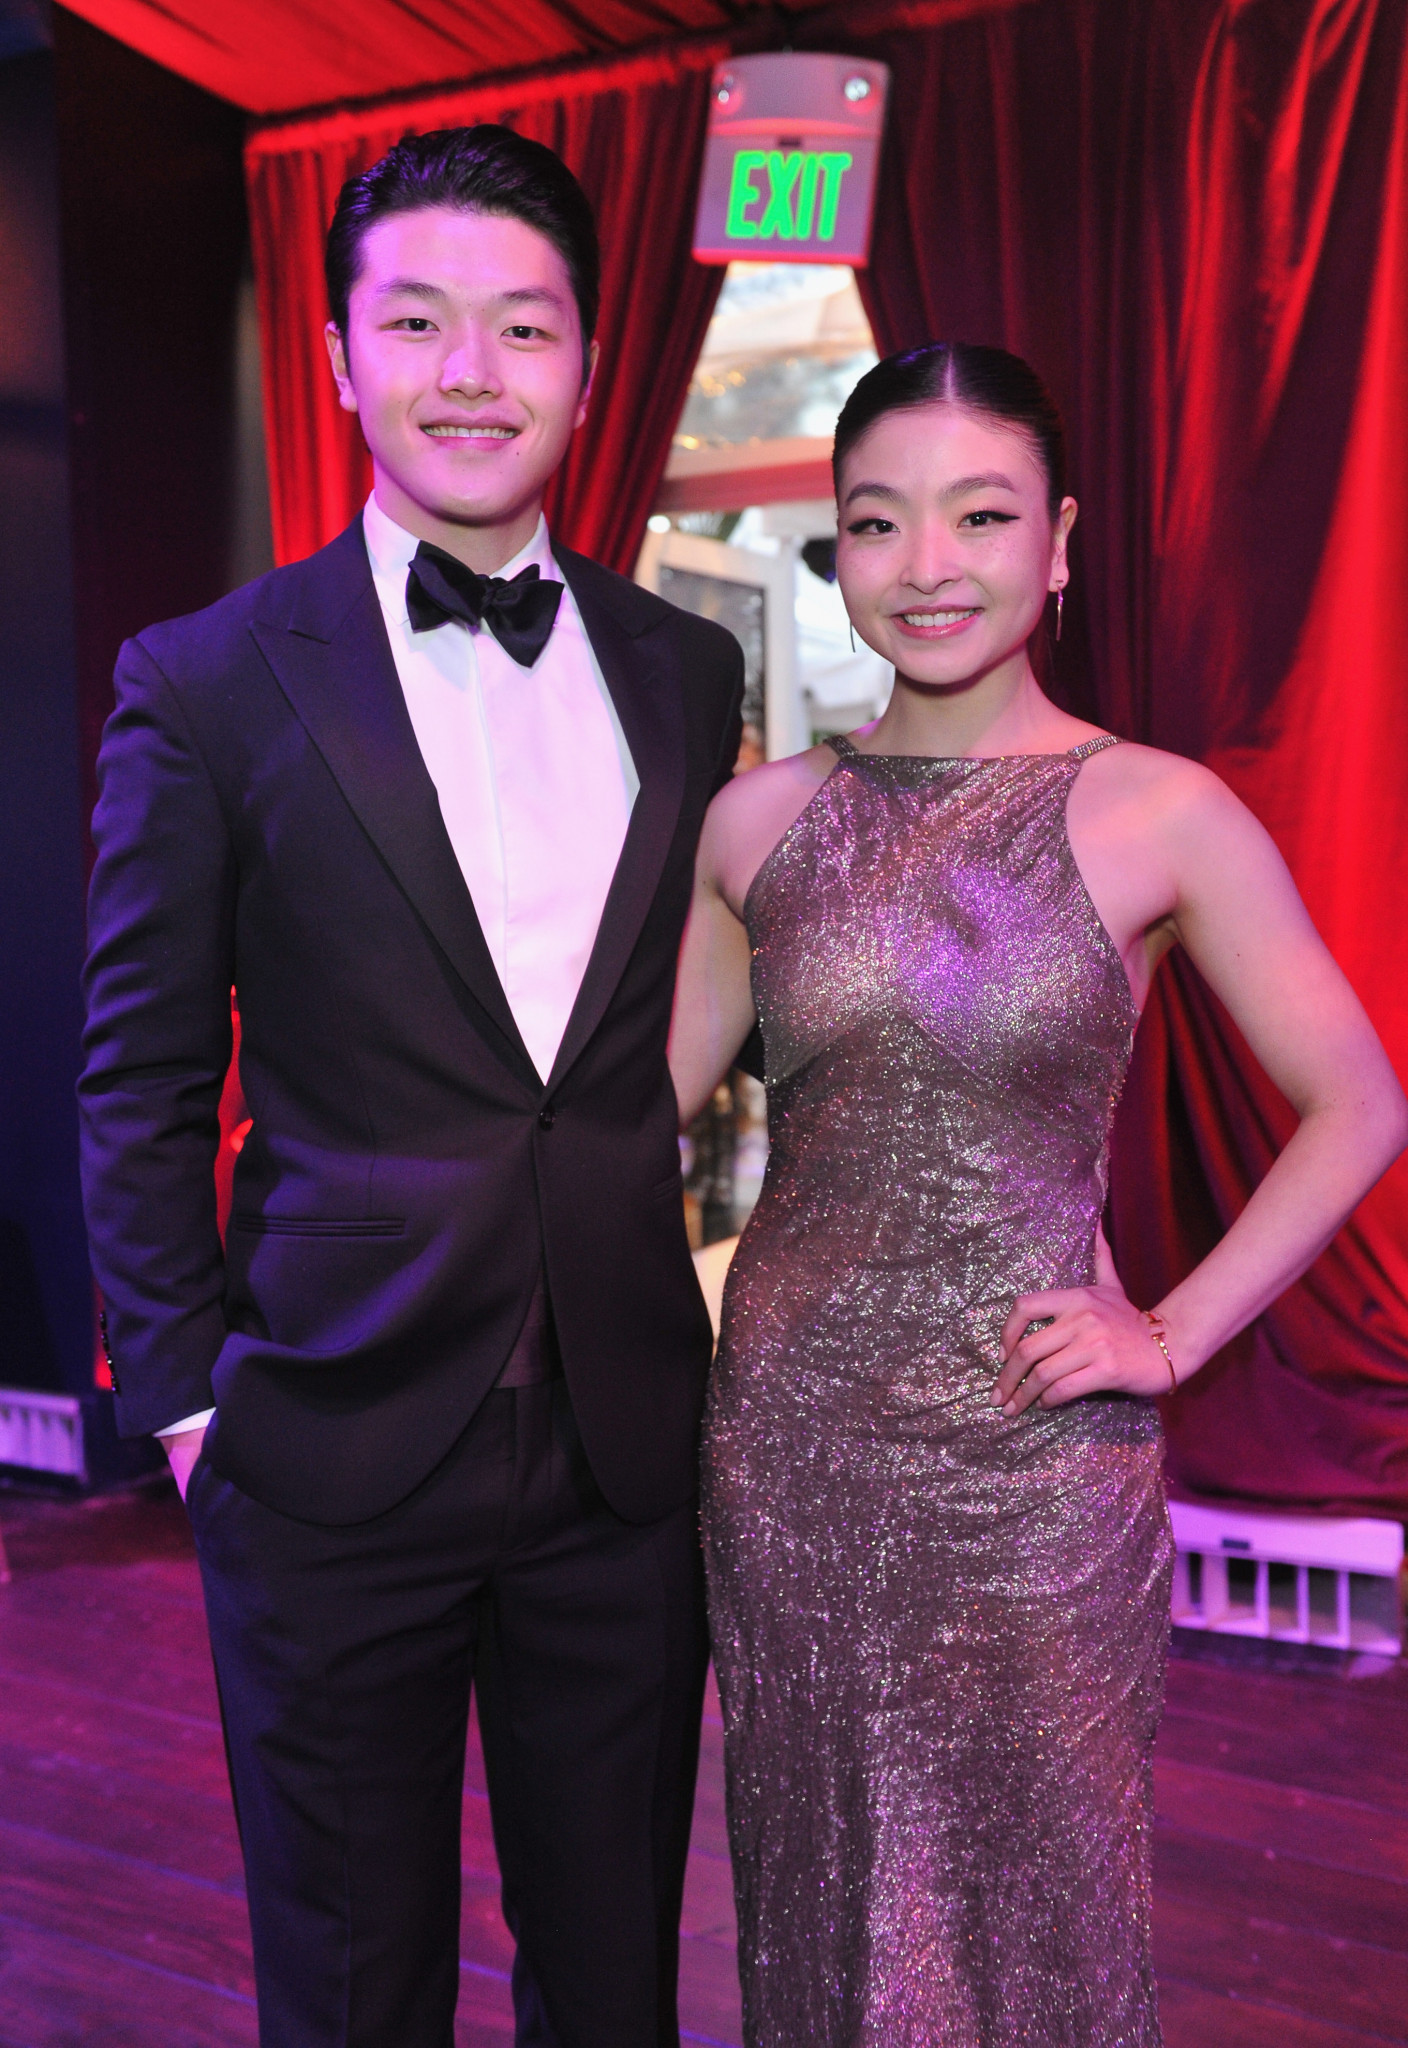 Siblings Alex and Maia Shibutani will miss the 2019-2020 competition circuit to focus on other projects © Getty Images